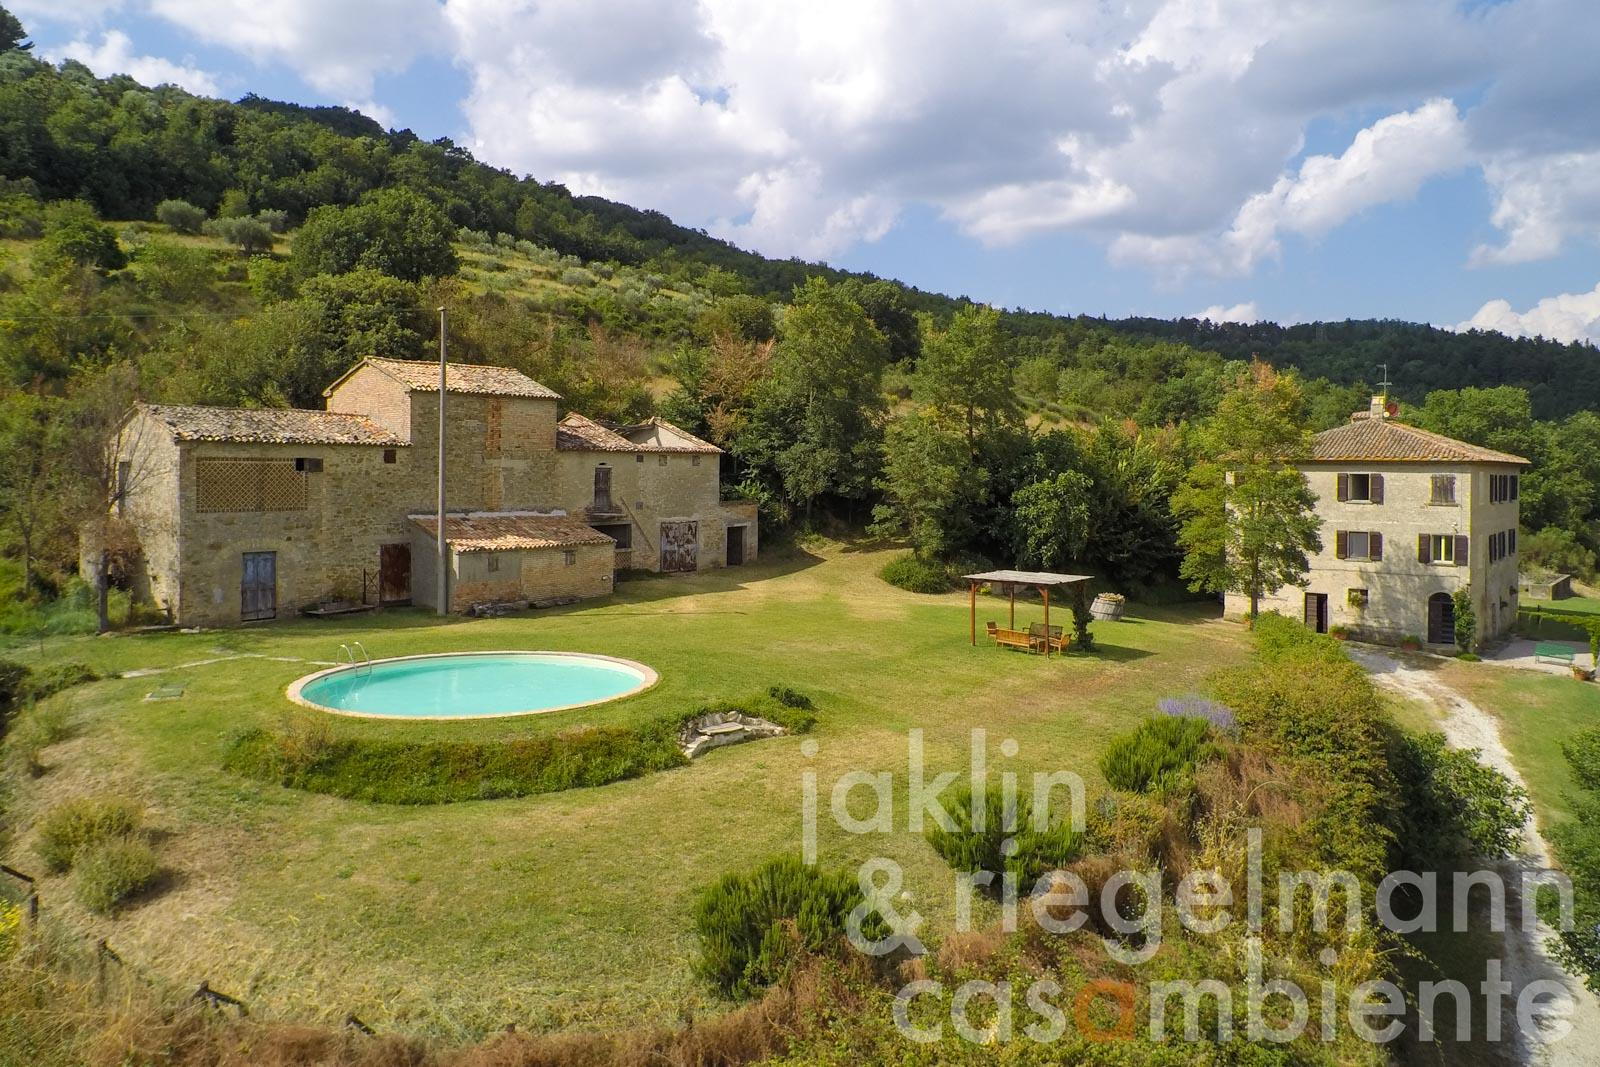 The Umbrian country house for sale in panoramic setting with annexe and pool close to Città di Castello